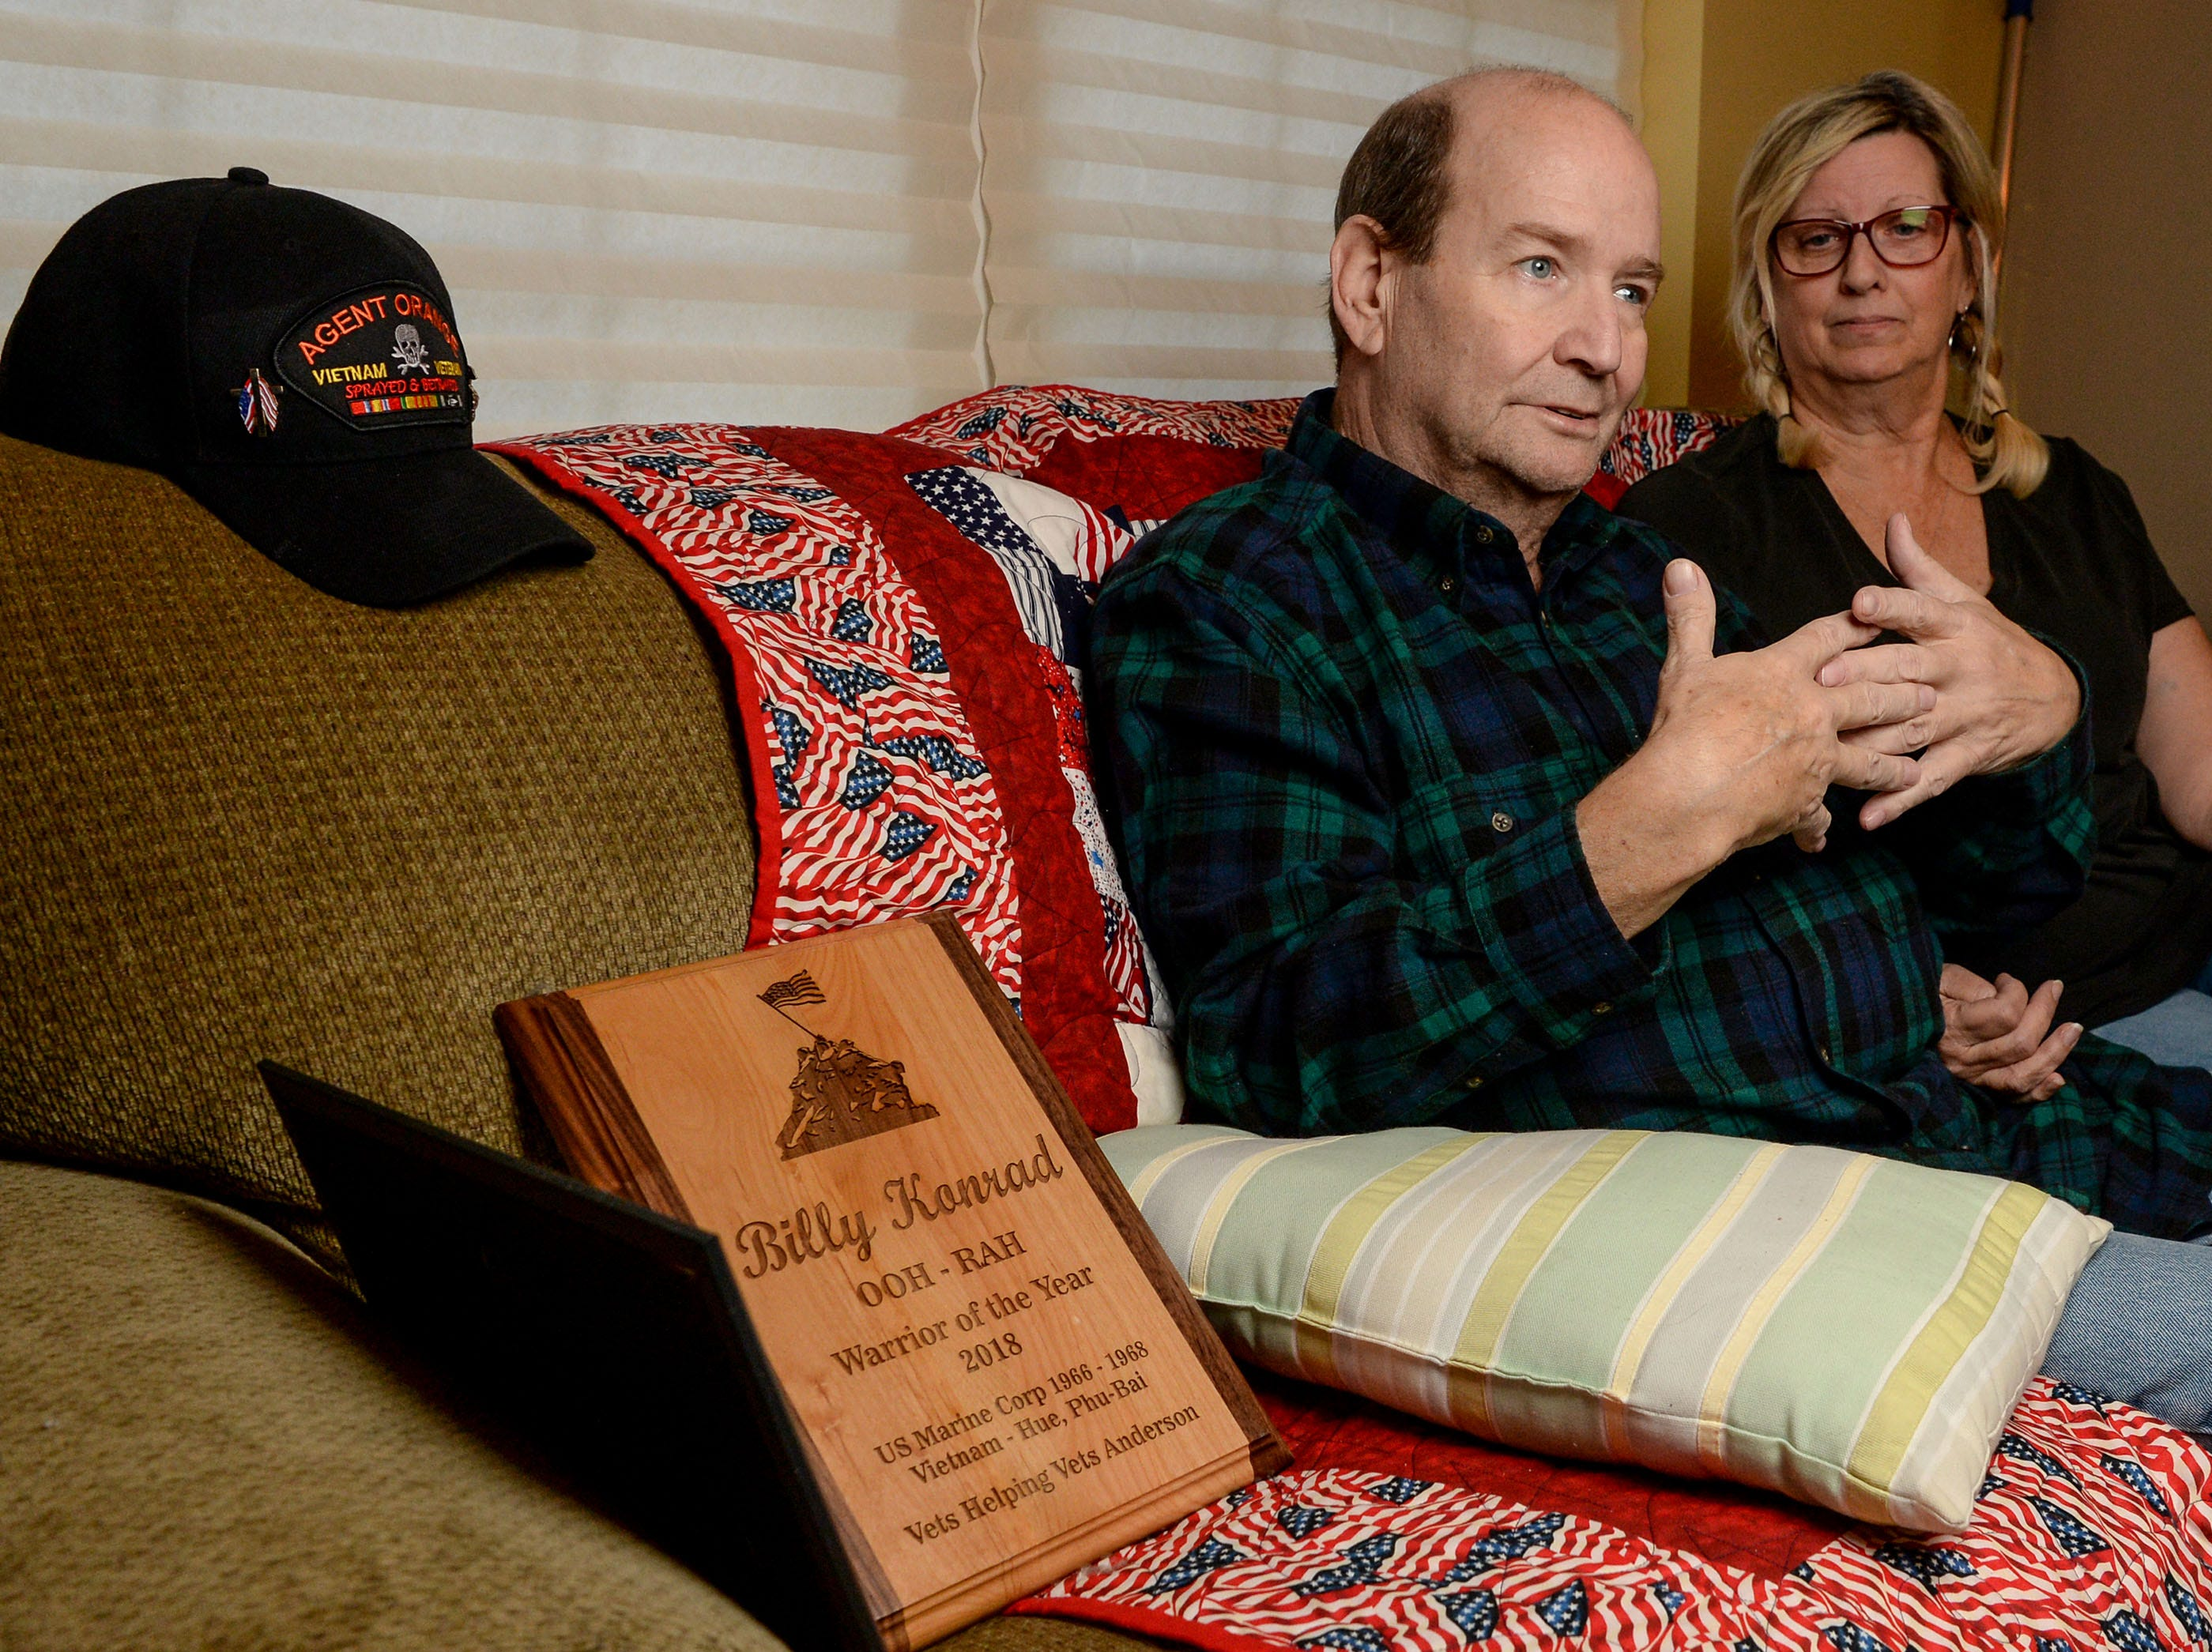 Vietnam Veteran Billy Konrad, left, with his wife Bonnie Konrad, talks about dealing with illnesses, health care, and serving in the U.S. Marine Corps, during an interview at his home in Anderson in December.